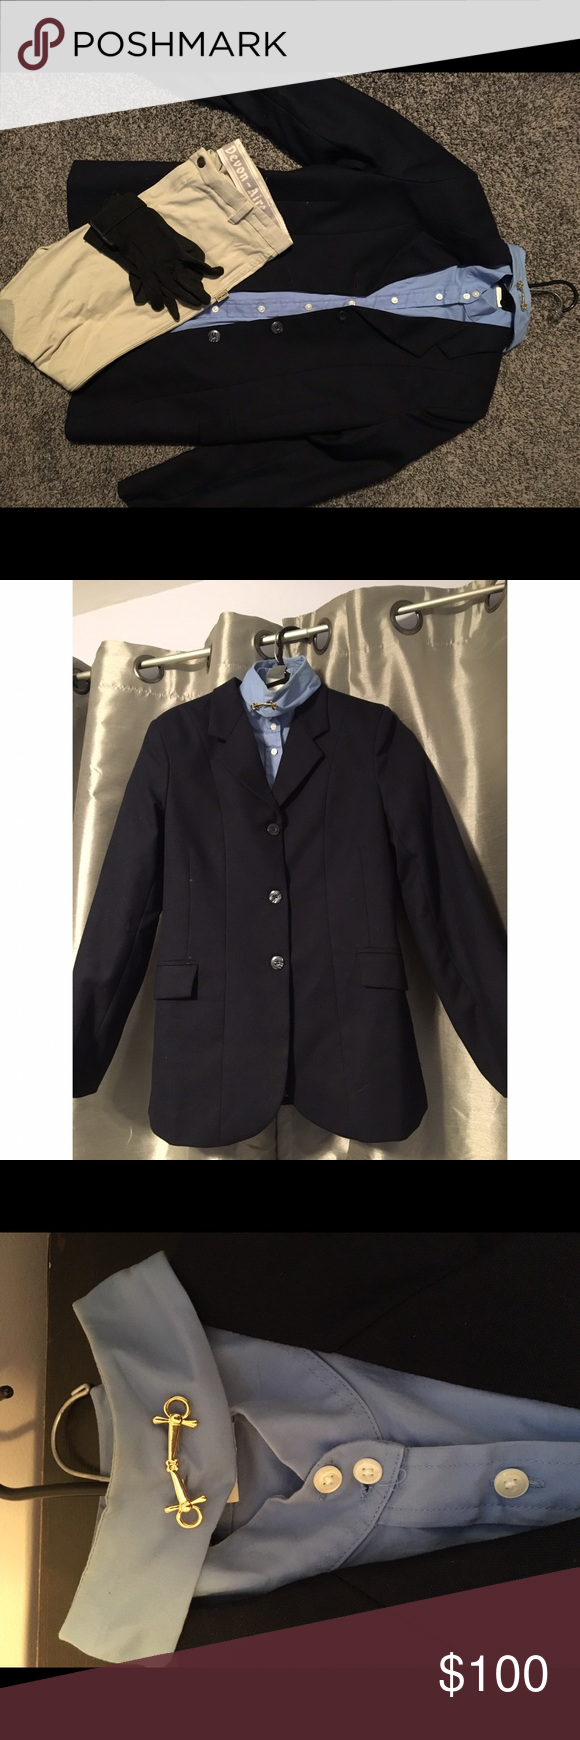 Navy/light blue Hunter Jumper Show Uniform🐎🐎🐎 Know any riders looking for some show gear??✨ Annie Rider Navy Show Coat (size 12 LONG), Devon-Aire Light Blue button up t-shirt (size M), Devon-Aire beige riding breeches (size XL), and black show gloves (size S-M)🐎 Worn for ONE show. MINOR stains on button up and jacket. Comes with coat protector (pictured). Price is $80 for everything pictured!Will sell items separately if interested!!🐎🐎🐎 Annie Rider Jackets & Coats